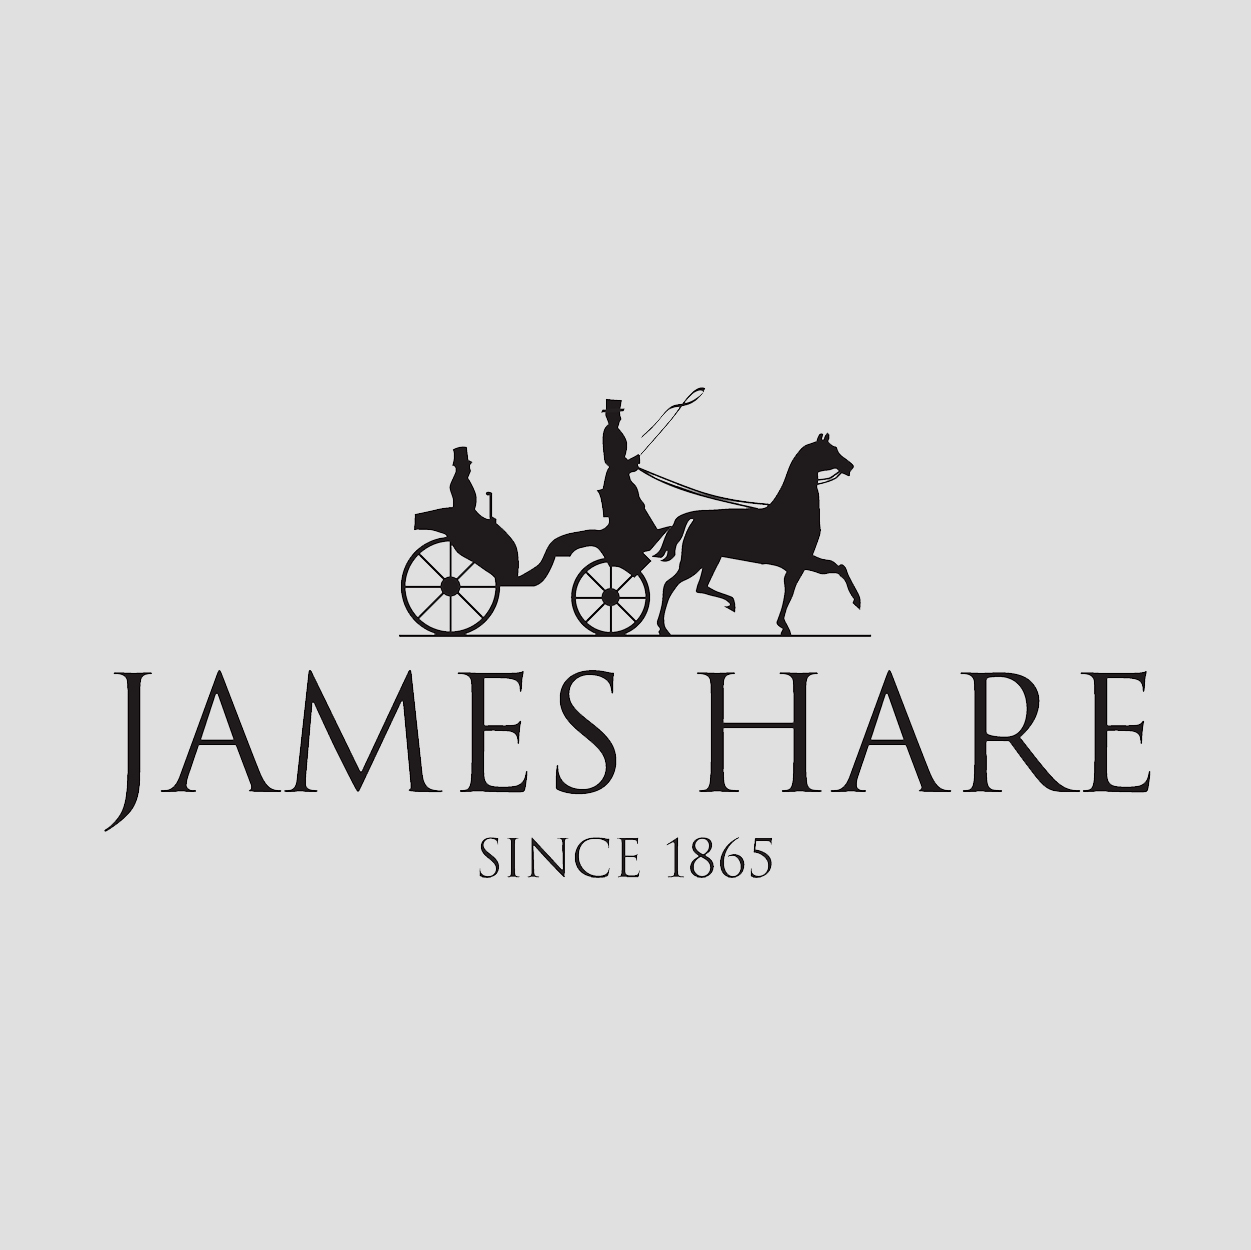 James Hare Designer Fabric Stockist London Fabric Company Uk